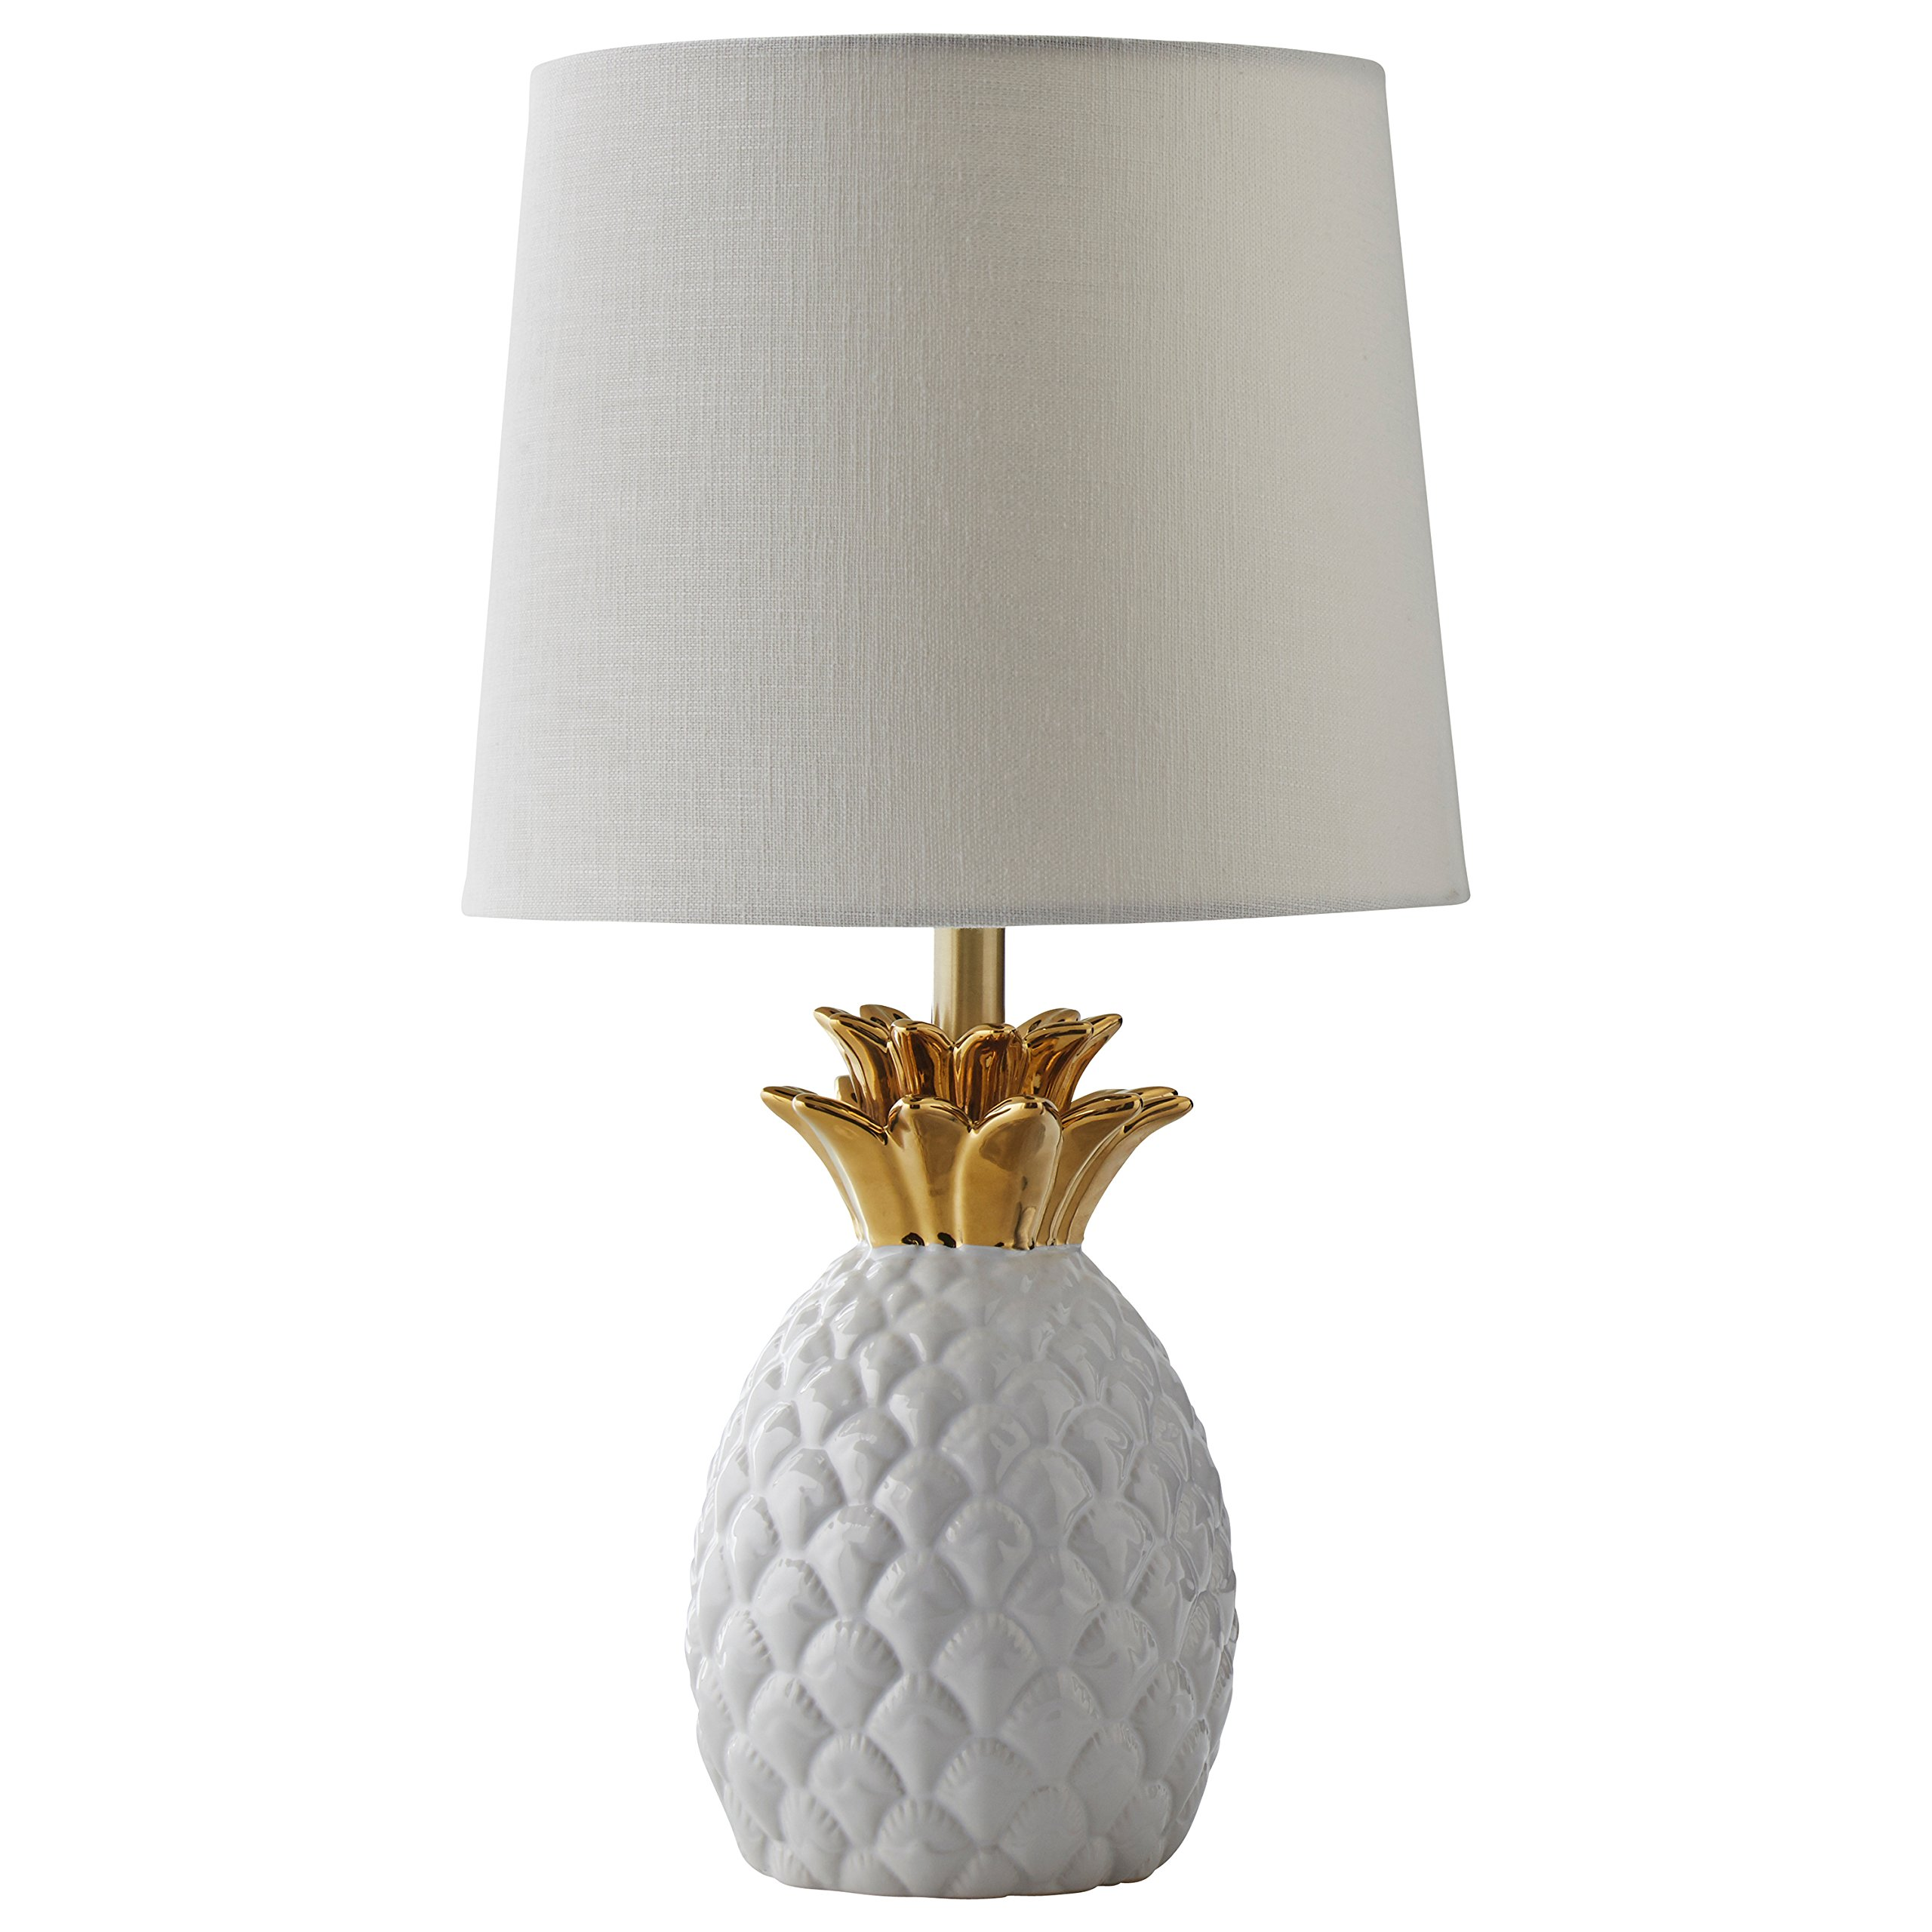 gold awesome and marshalls lamps led floor new of way lamp modern inspiration white table